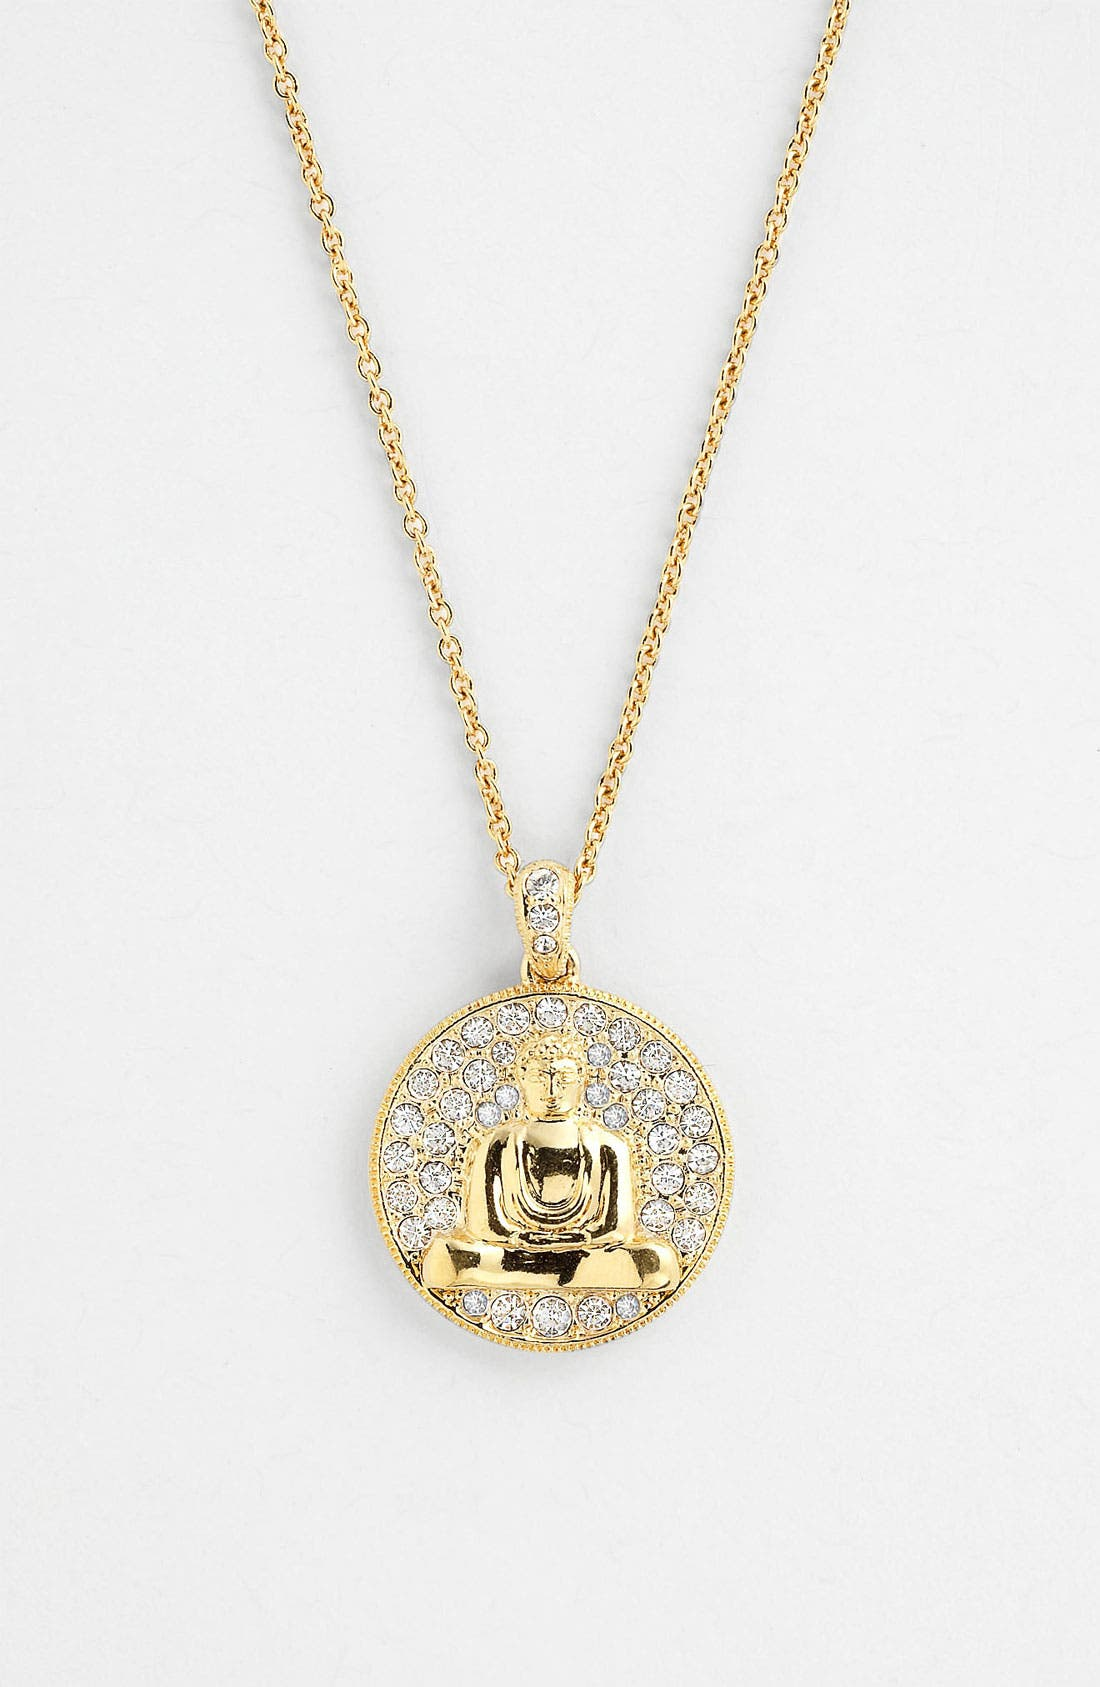 Alternate Image 1 Selected - Nadri 'Buddha' Pendant Necklace (Nordstrom Exclusive)